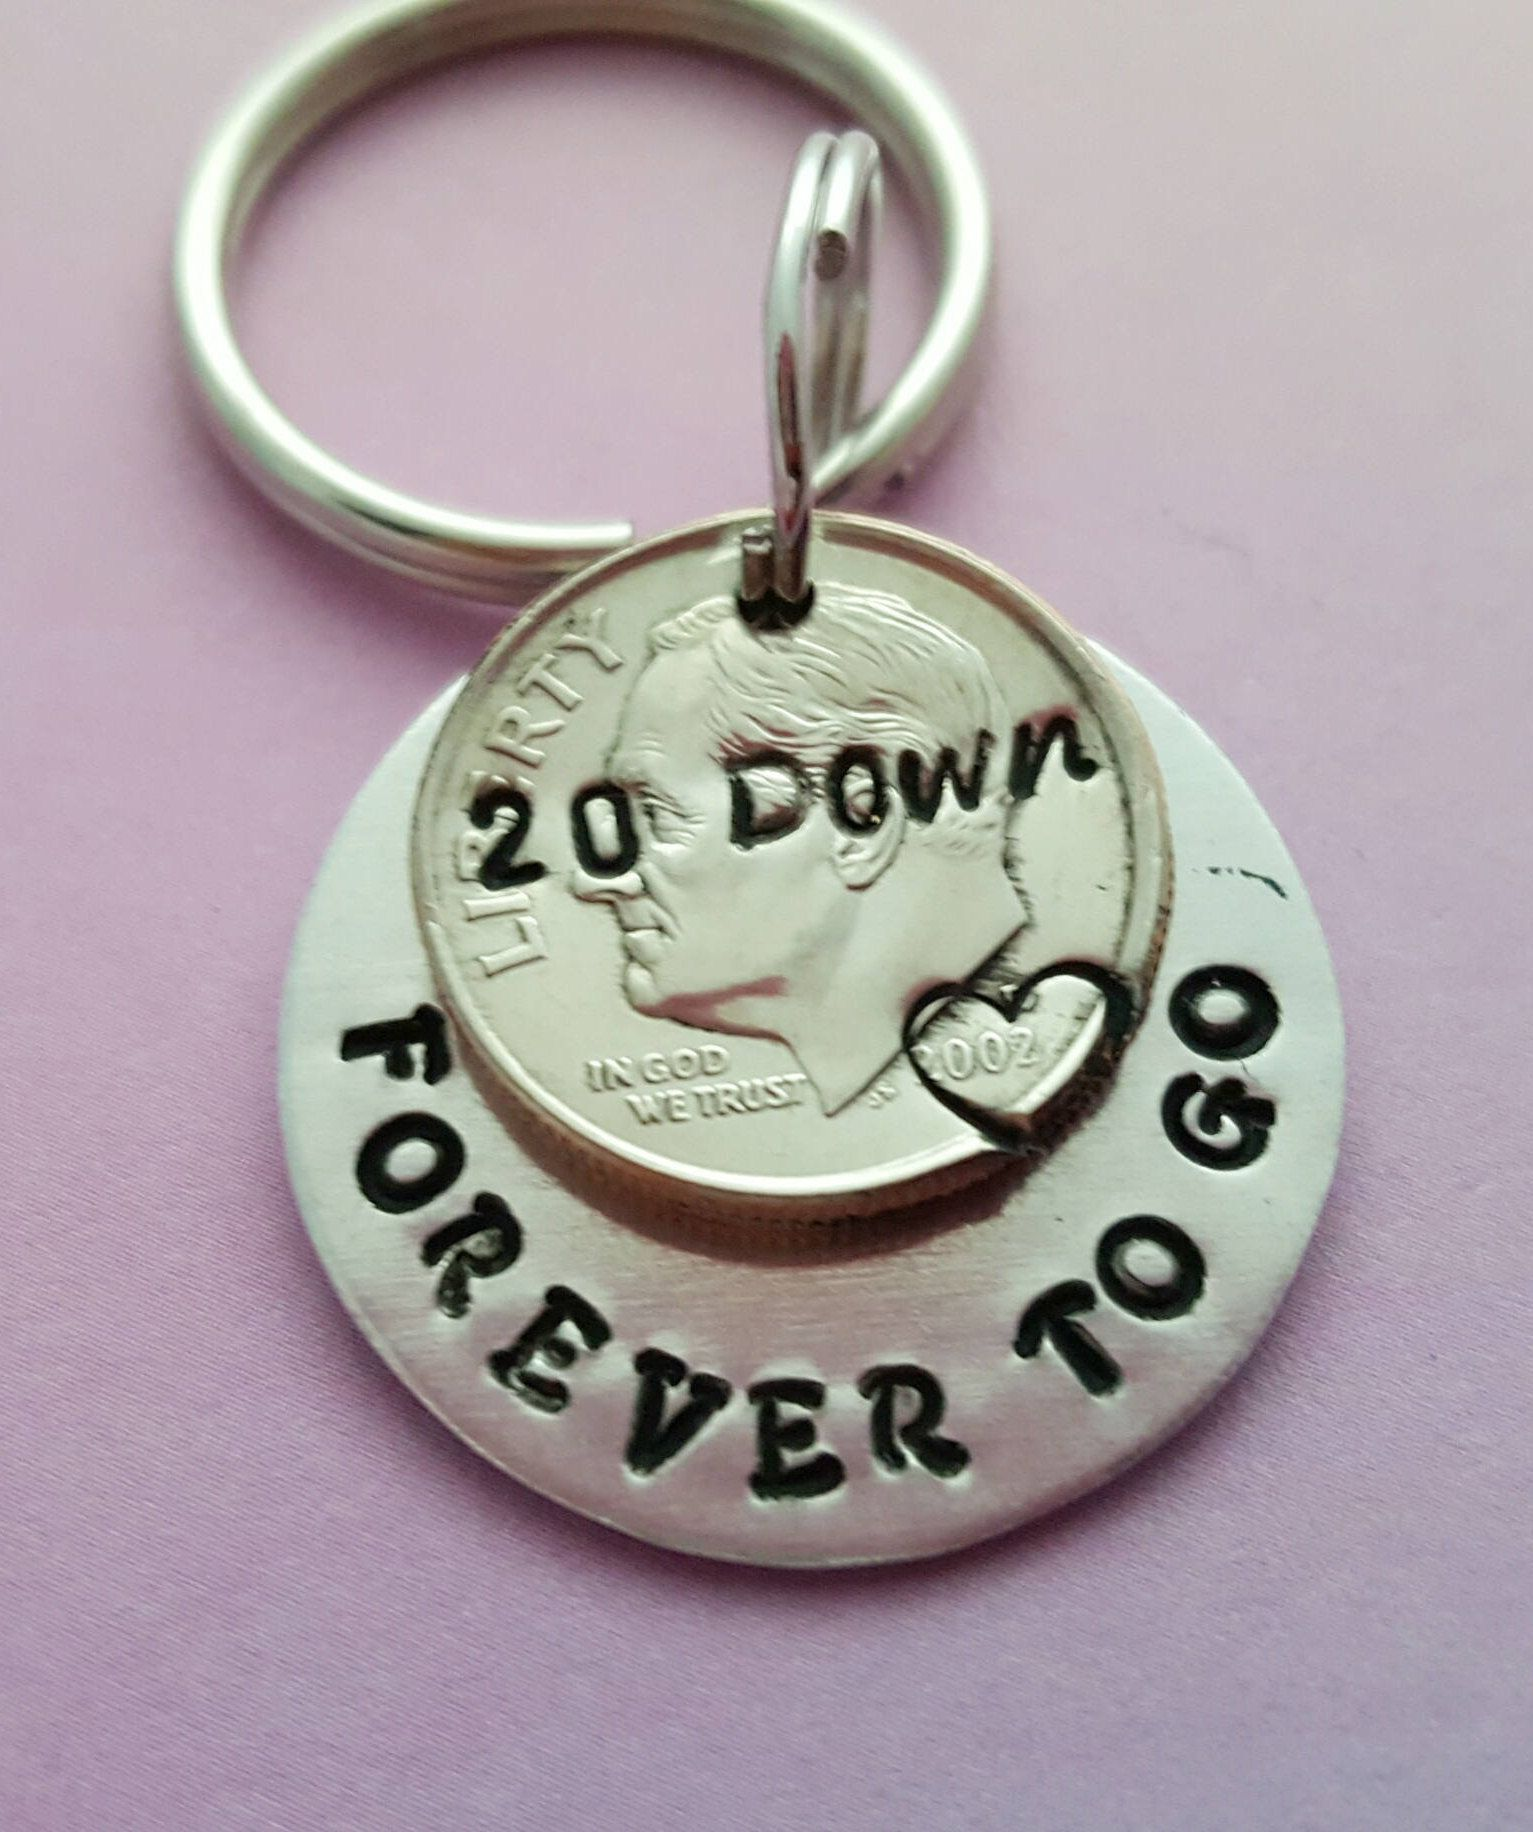 20 Year Wedding Anniversary Gift Ideas: 20th Anniversary Gift Idea, 20 Year Wedding Anniversary